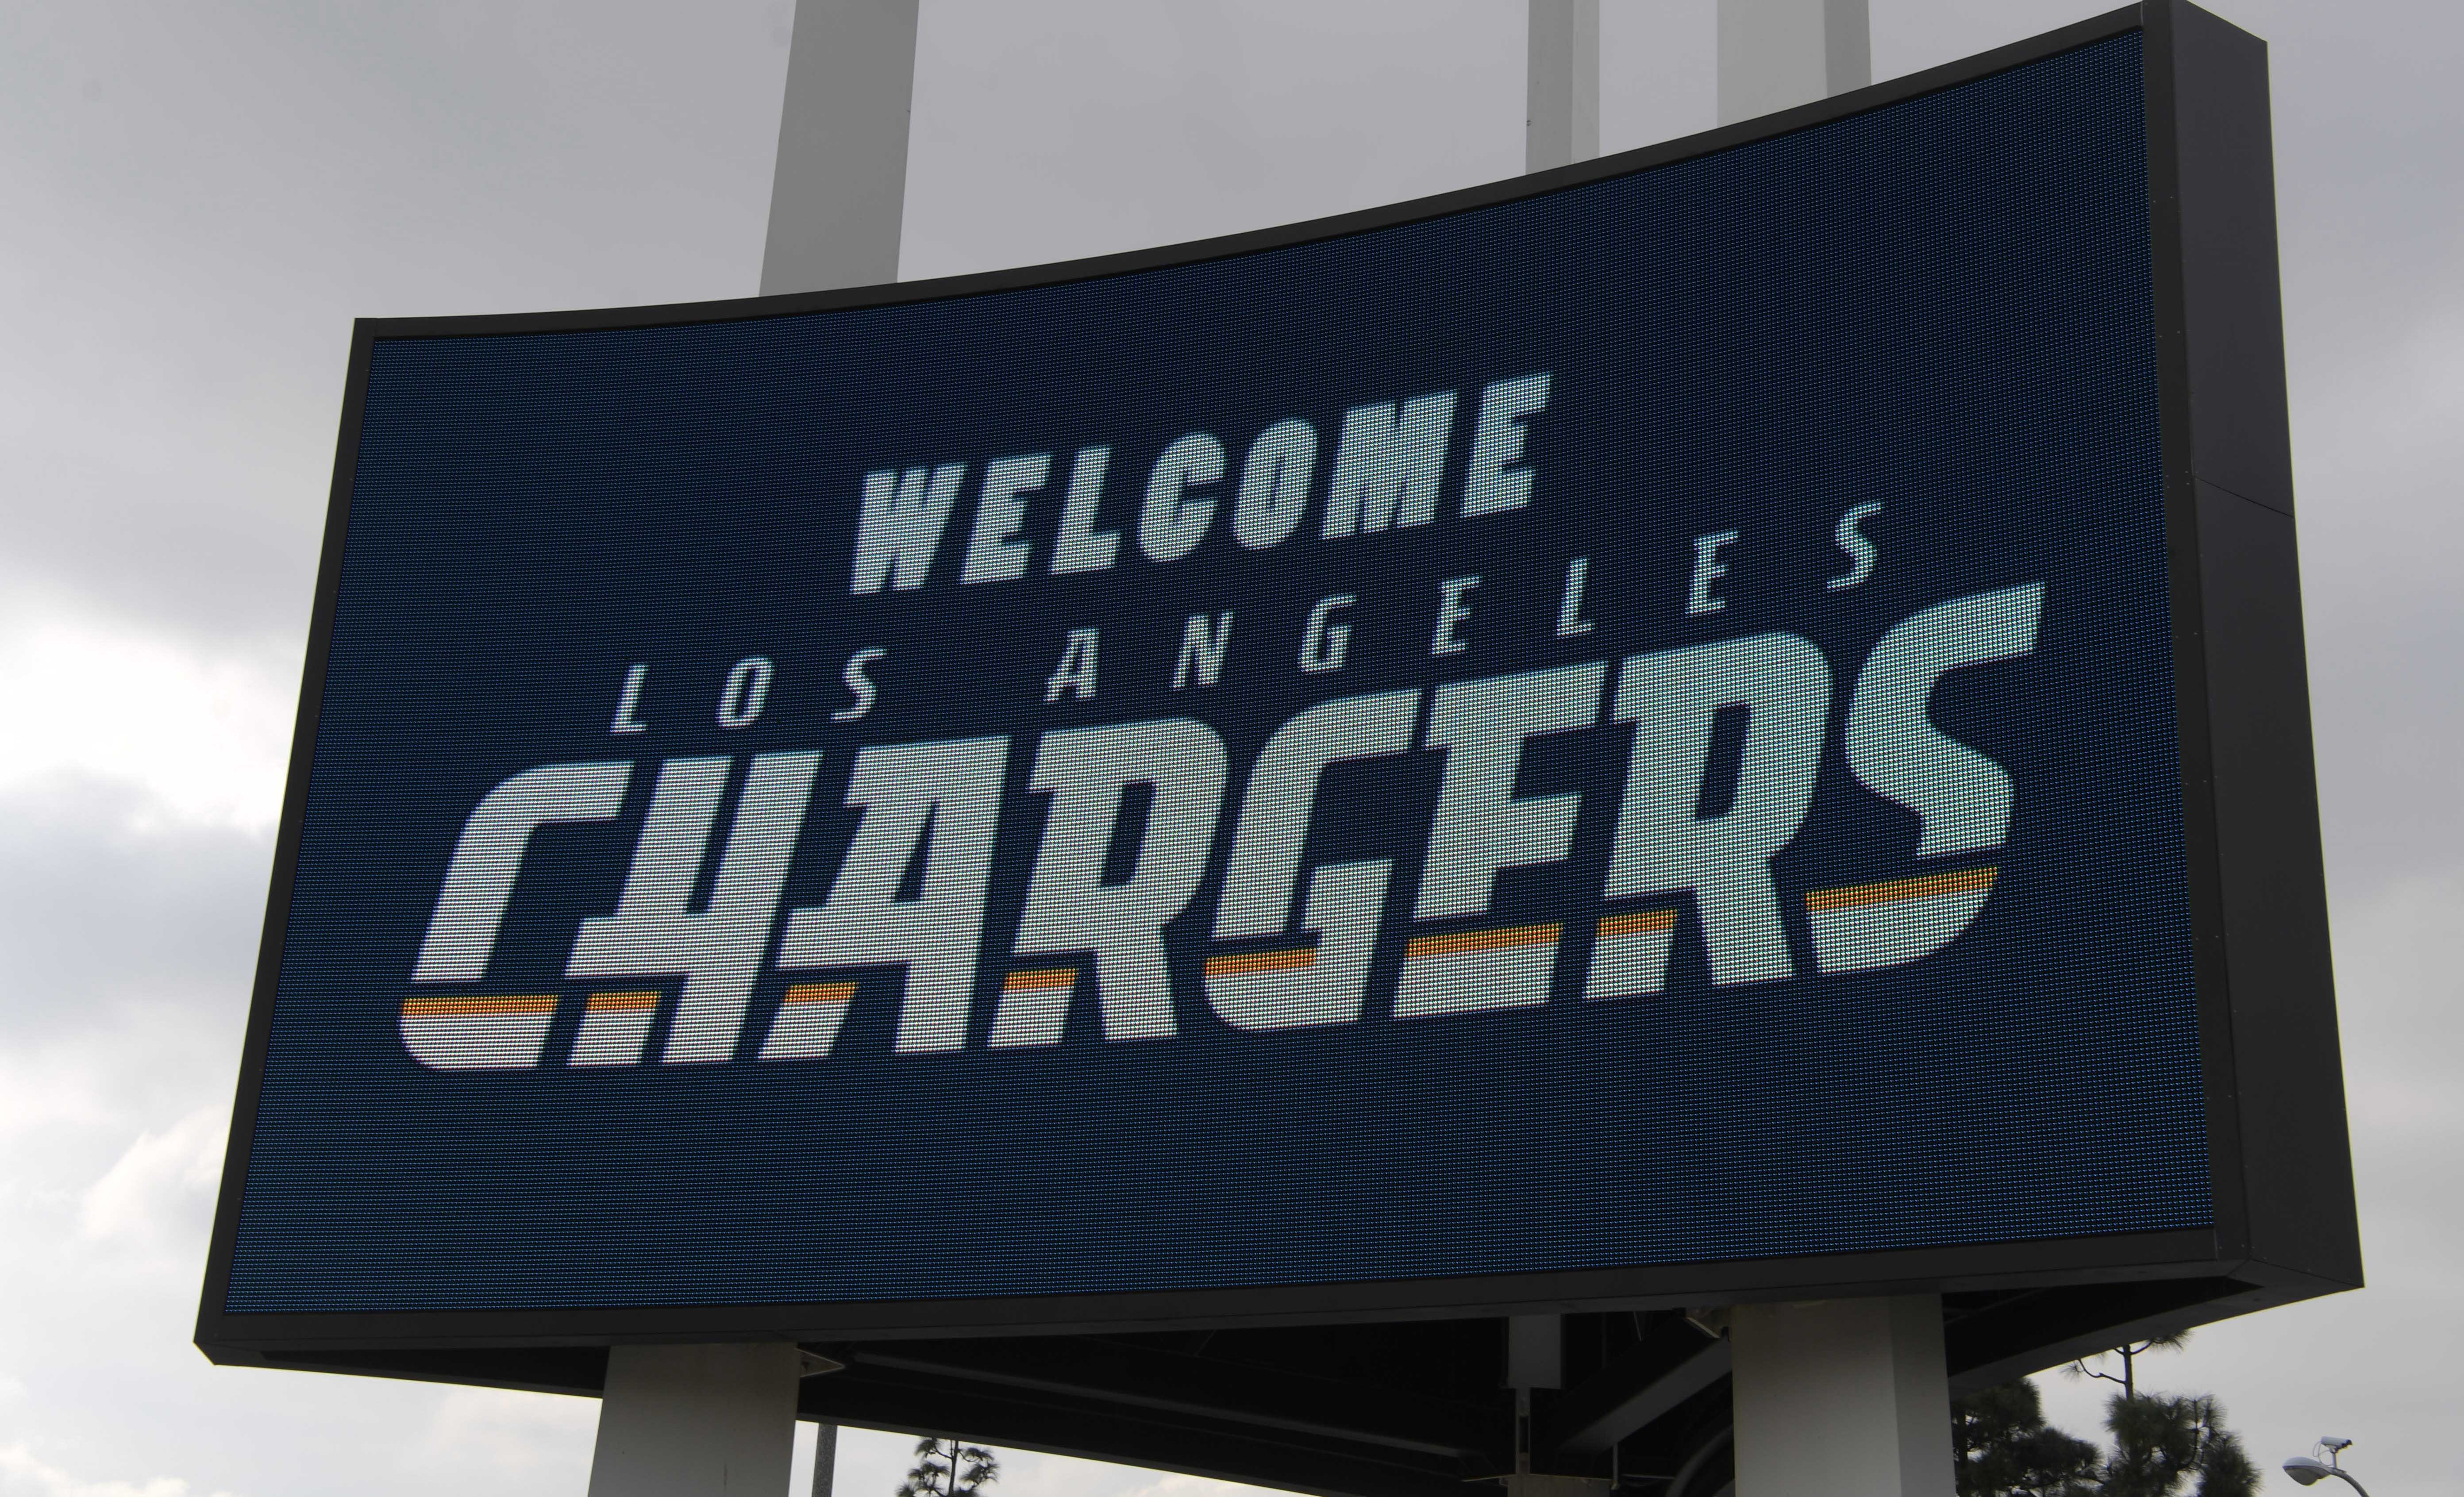 9818754-nfl-los-angeles-chargers-kickoff-ceremony